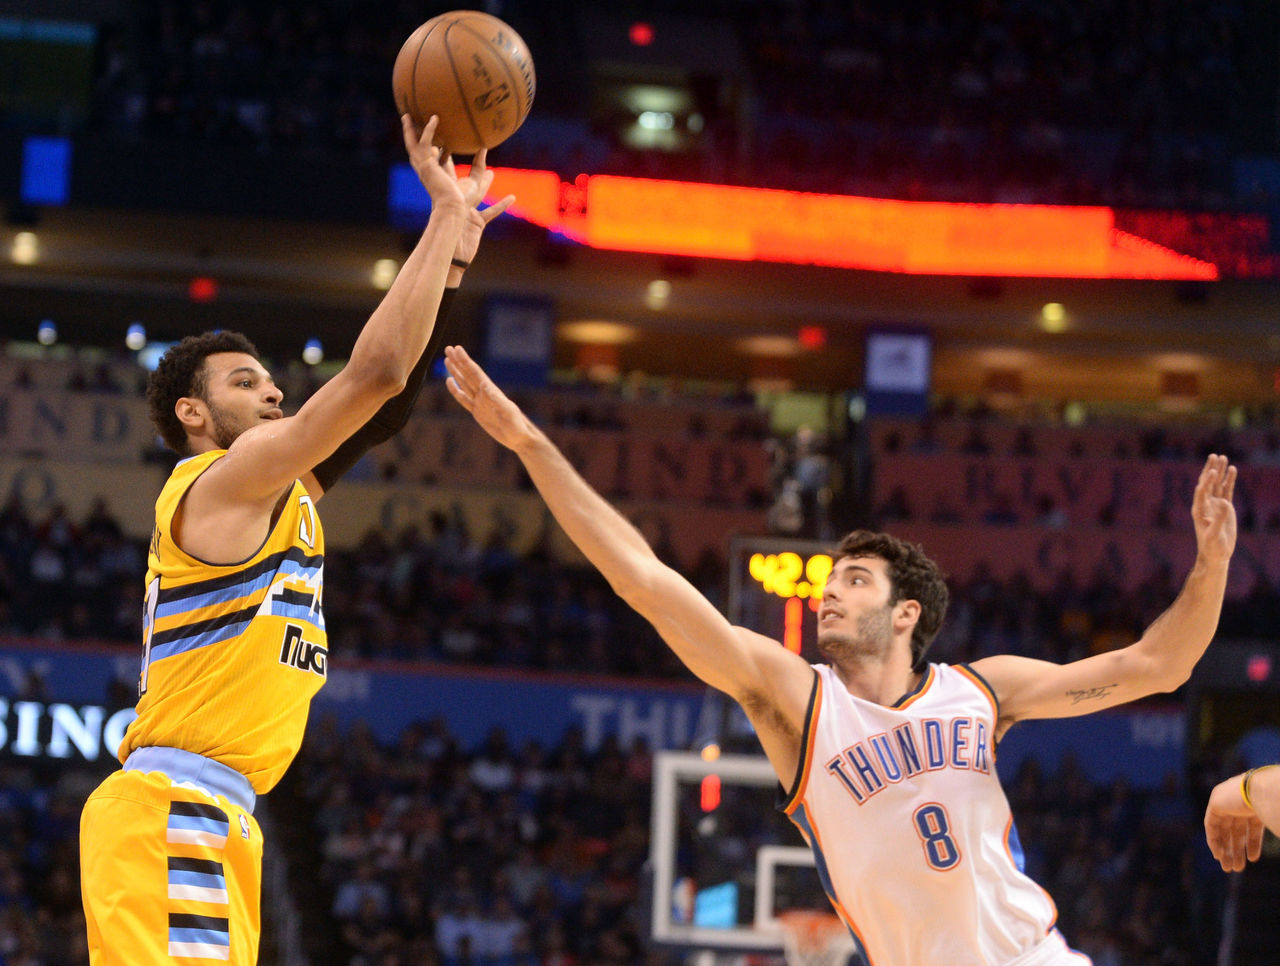 Cropped_2017-04-13t013353z_1390421403_nocid_rtrmadp_3_nba-denver-nuggets-at-oklahoma-city-thunder